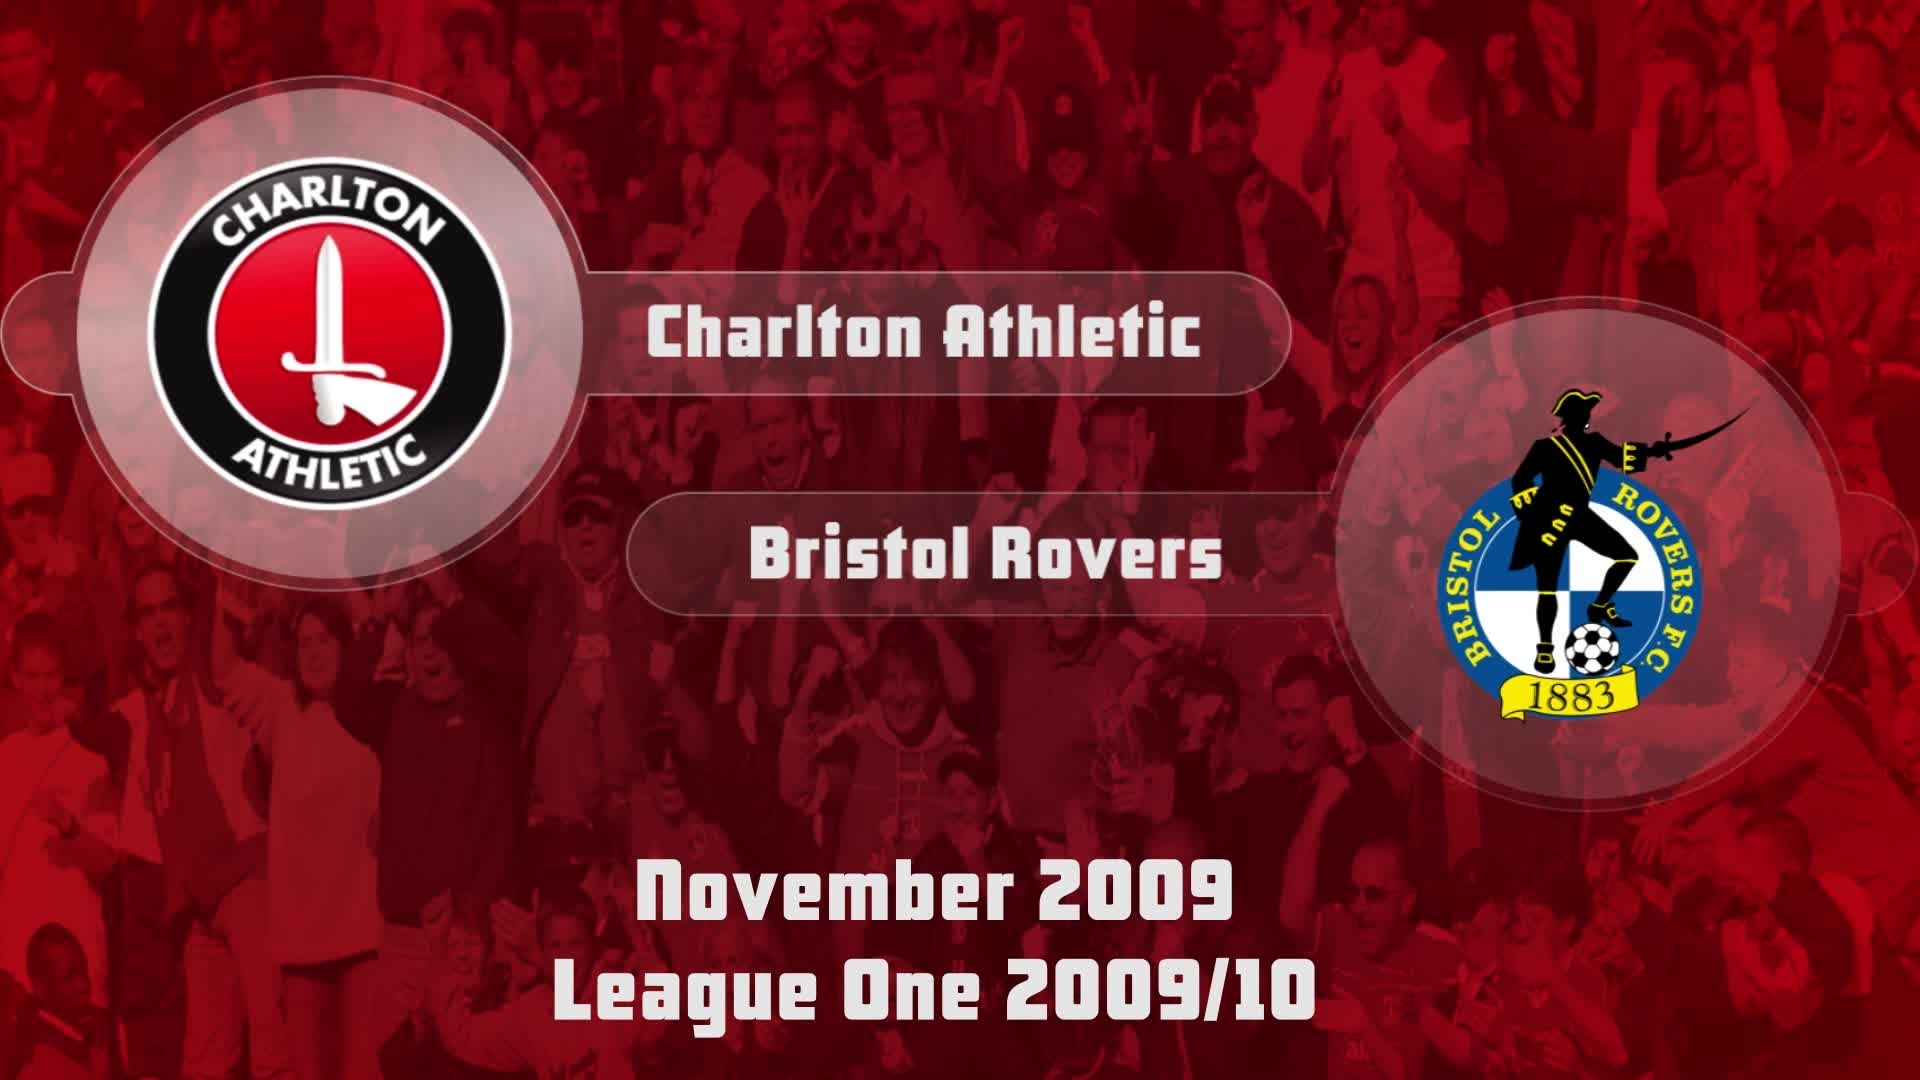 22 HIGHLIGHTS | Charlton 4 Bristol Rovers 2 (Nov 2009)